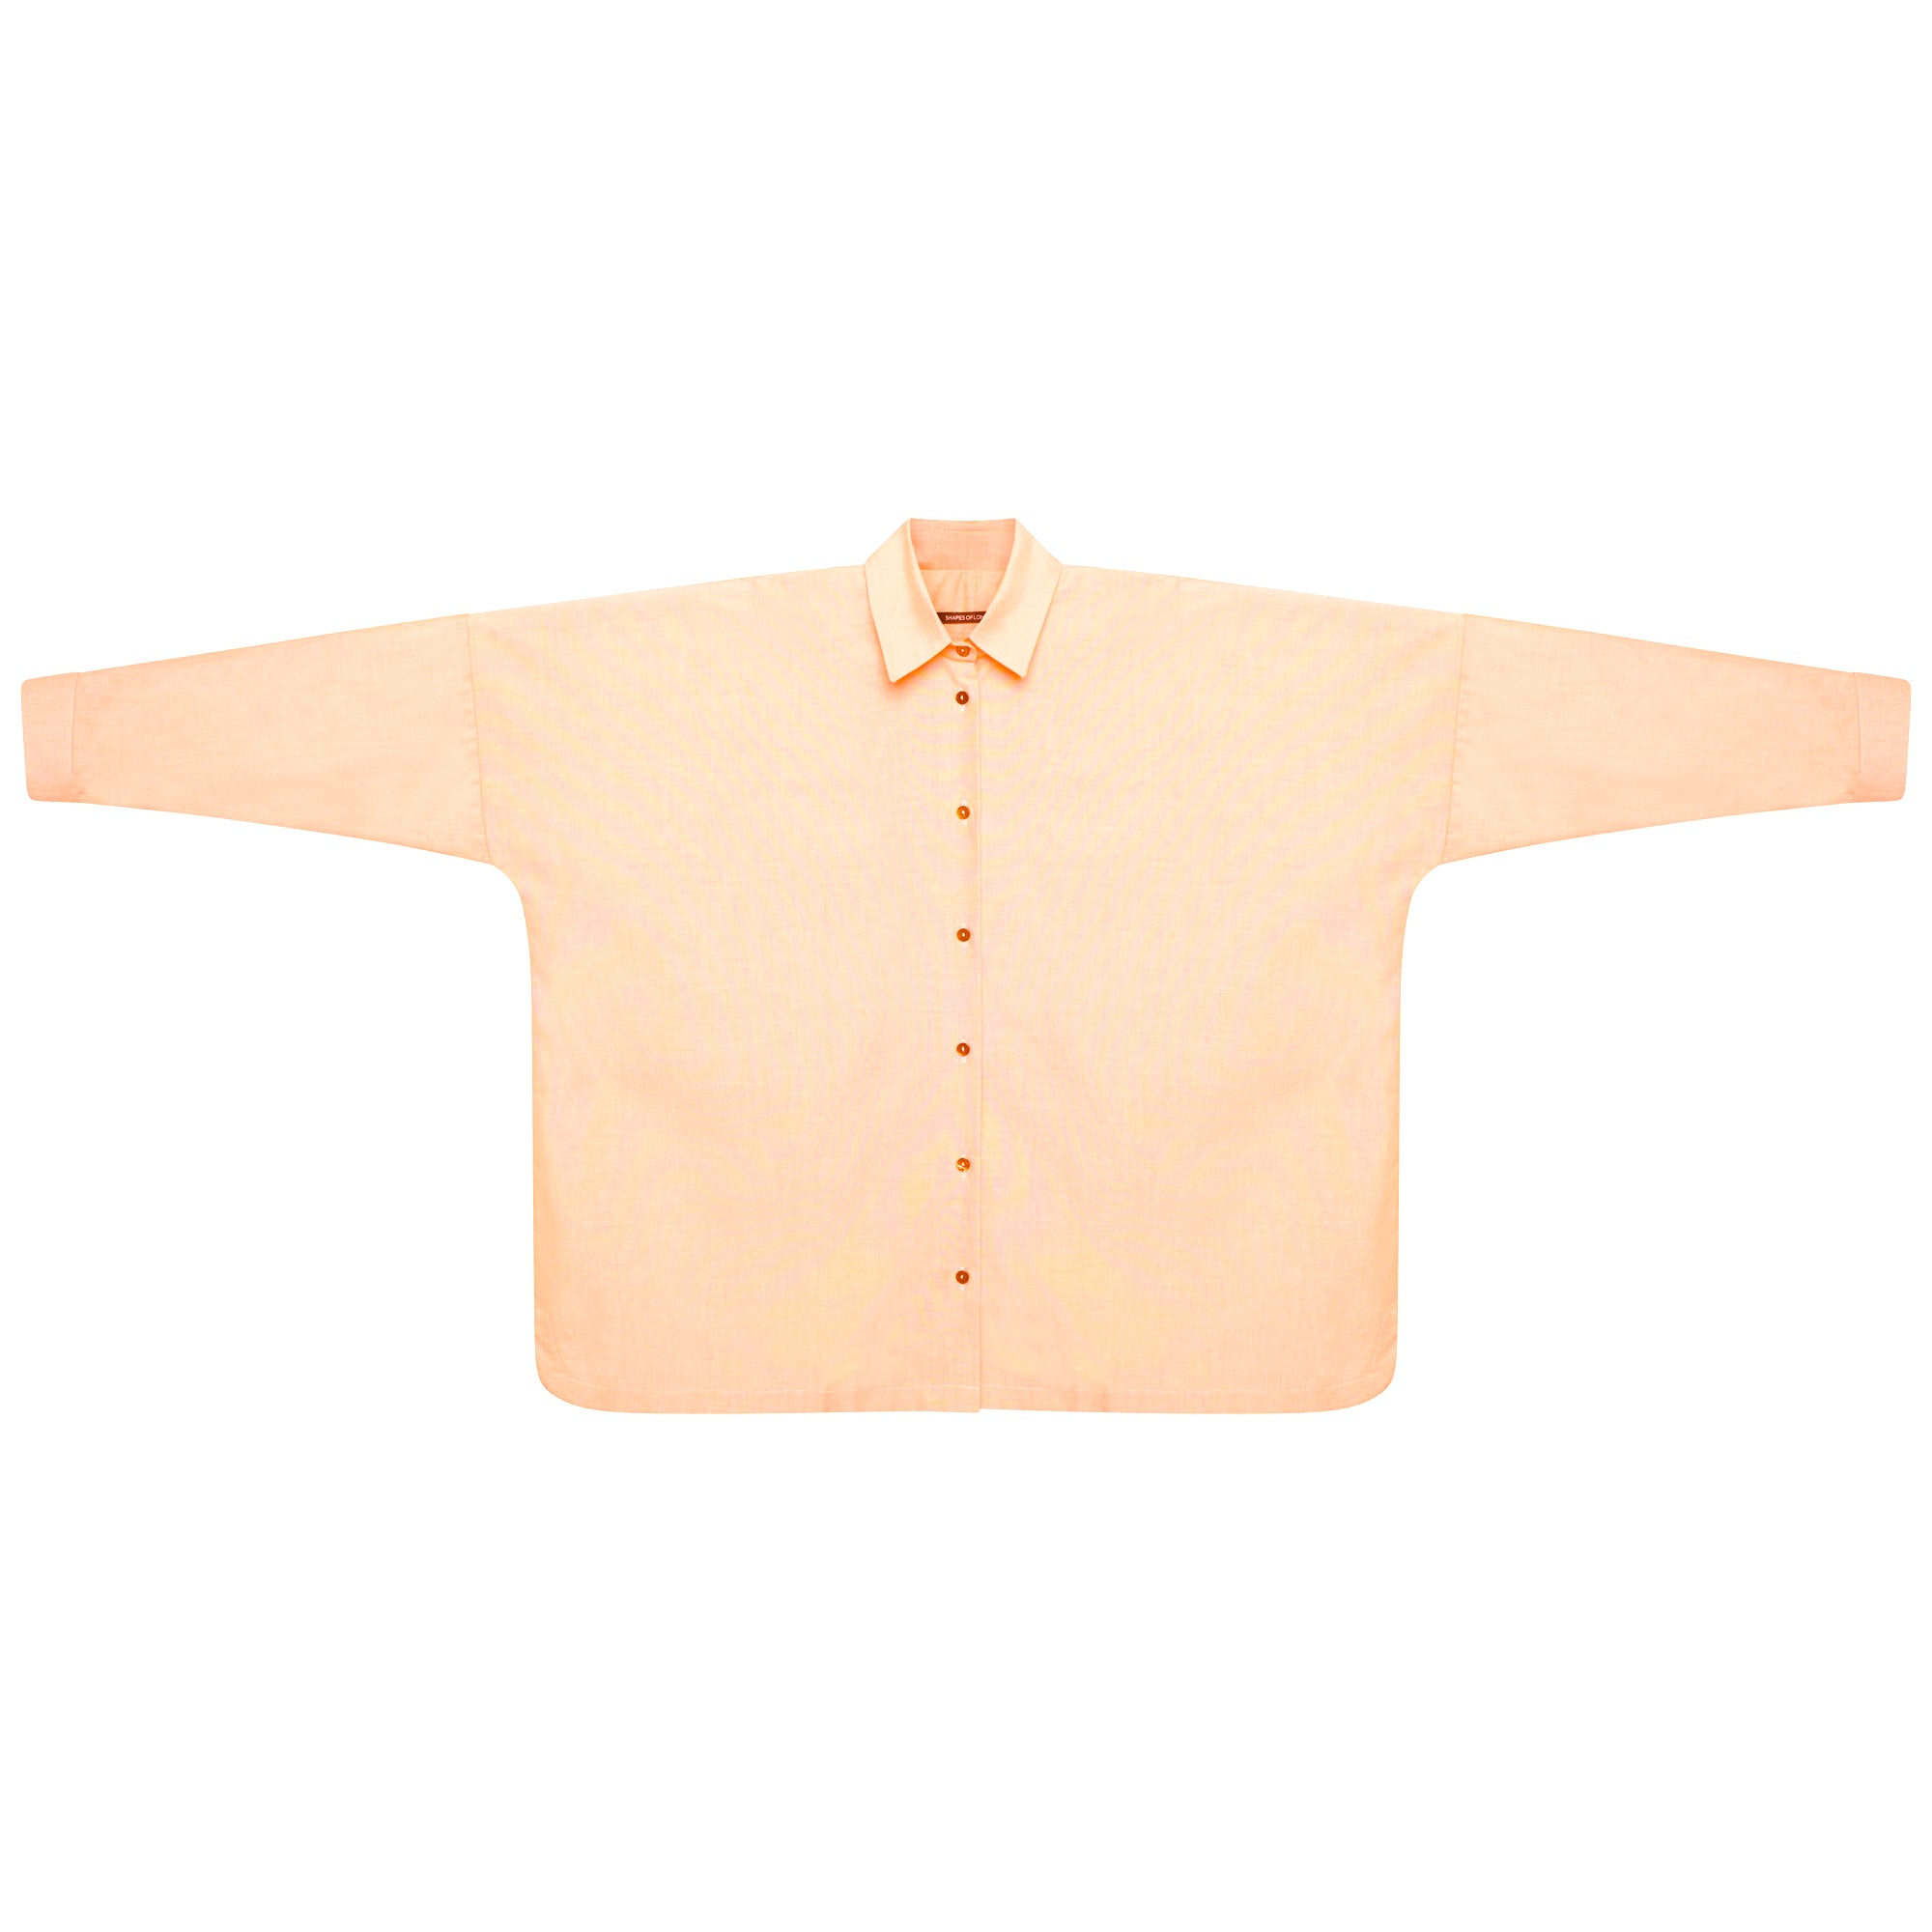 SOFT COTTON LONG SLEEVE SHIRT | PASTEL ORANGE WITH APRICOT BUTTONS